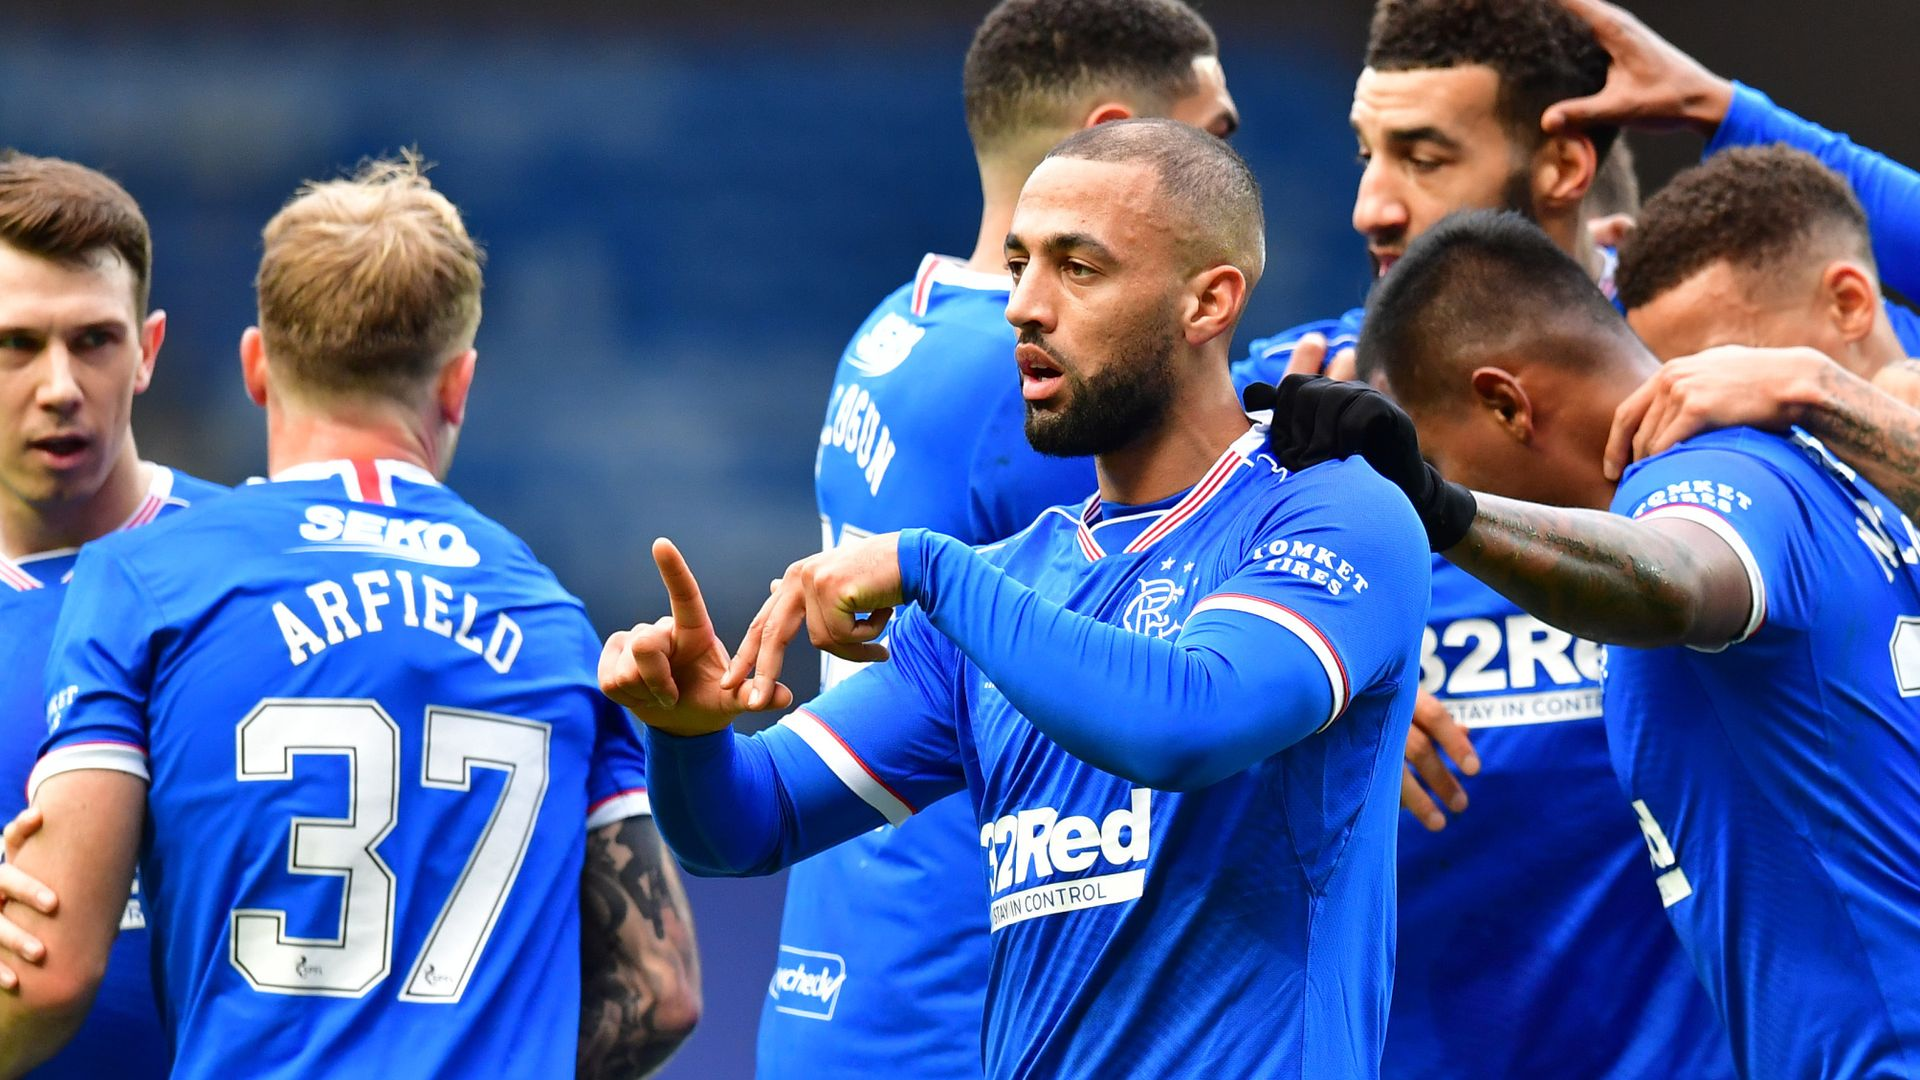 Rangers vs Standard Liege - Aribo on bench LIVE!